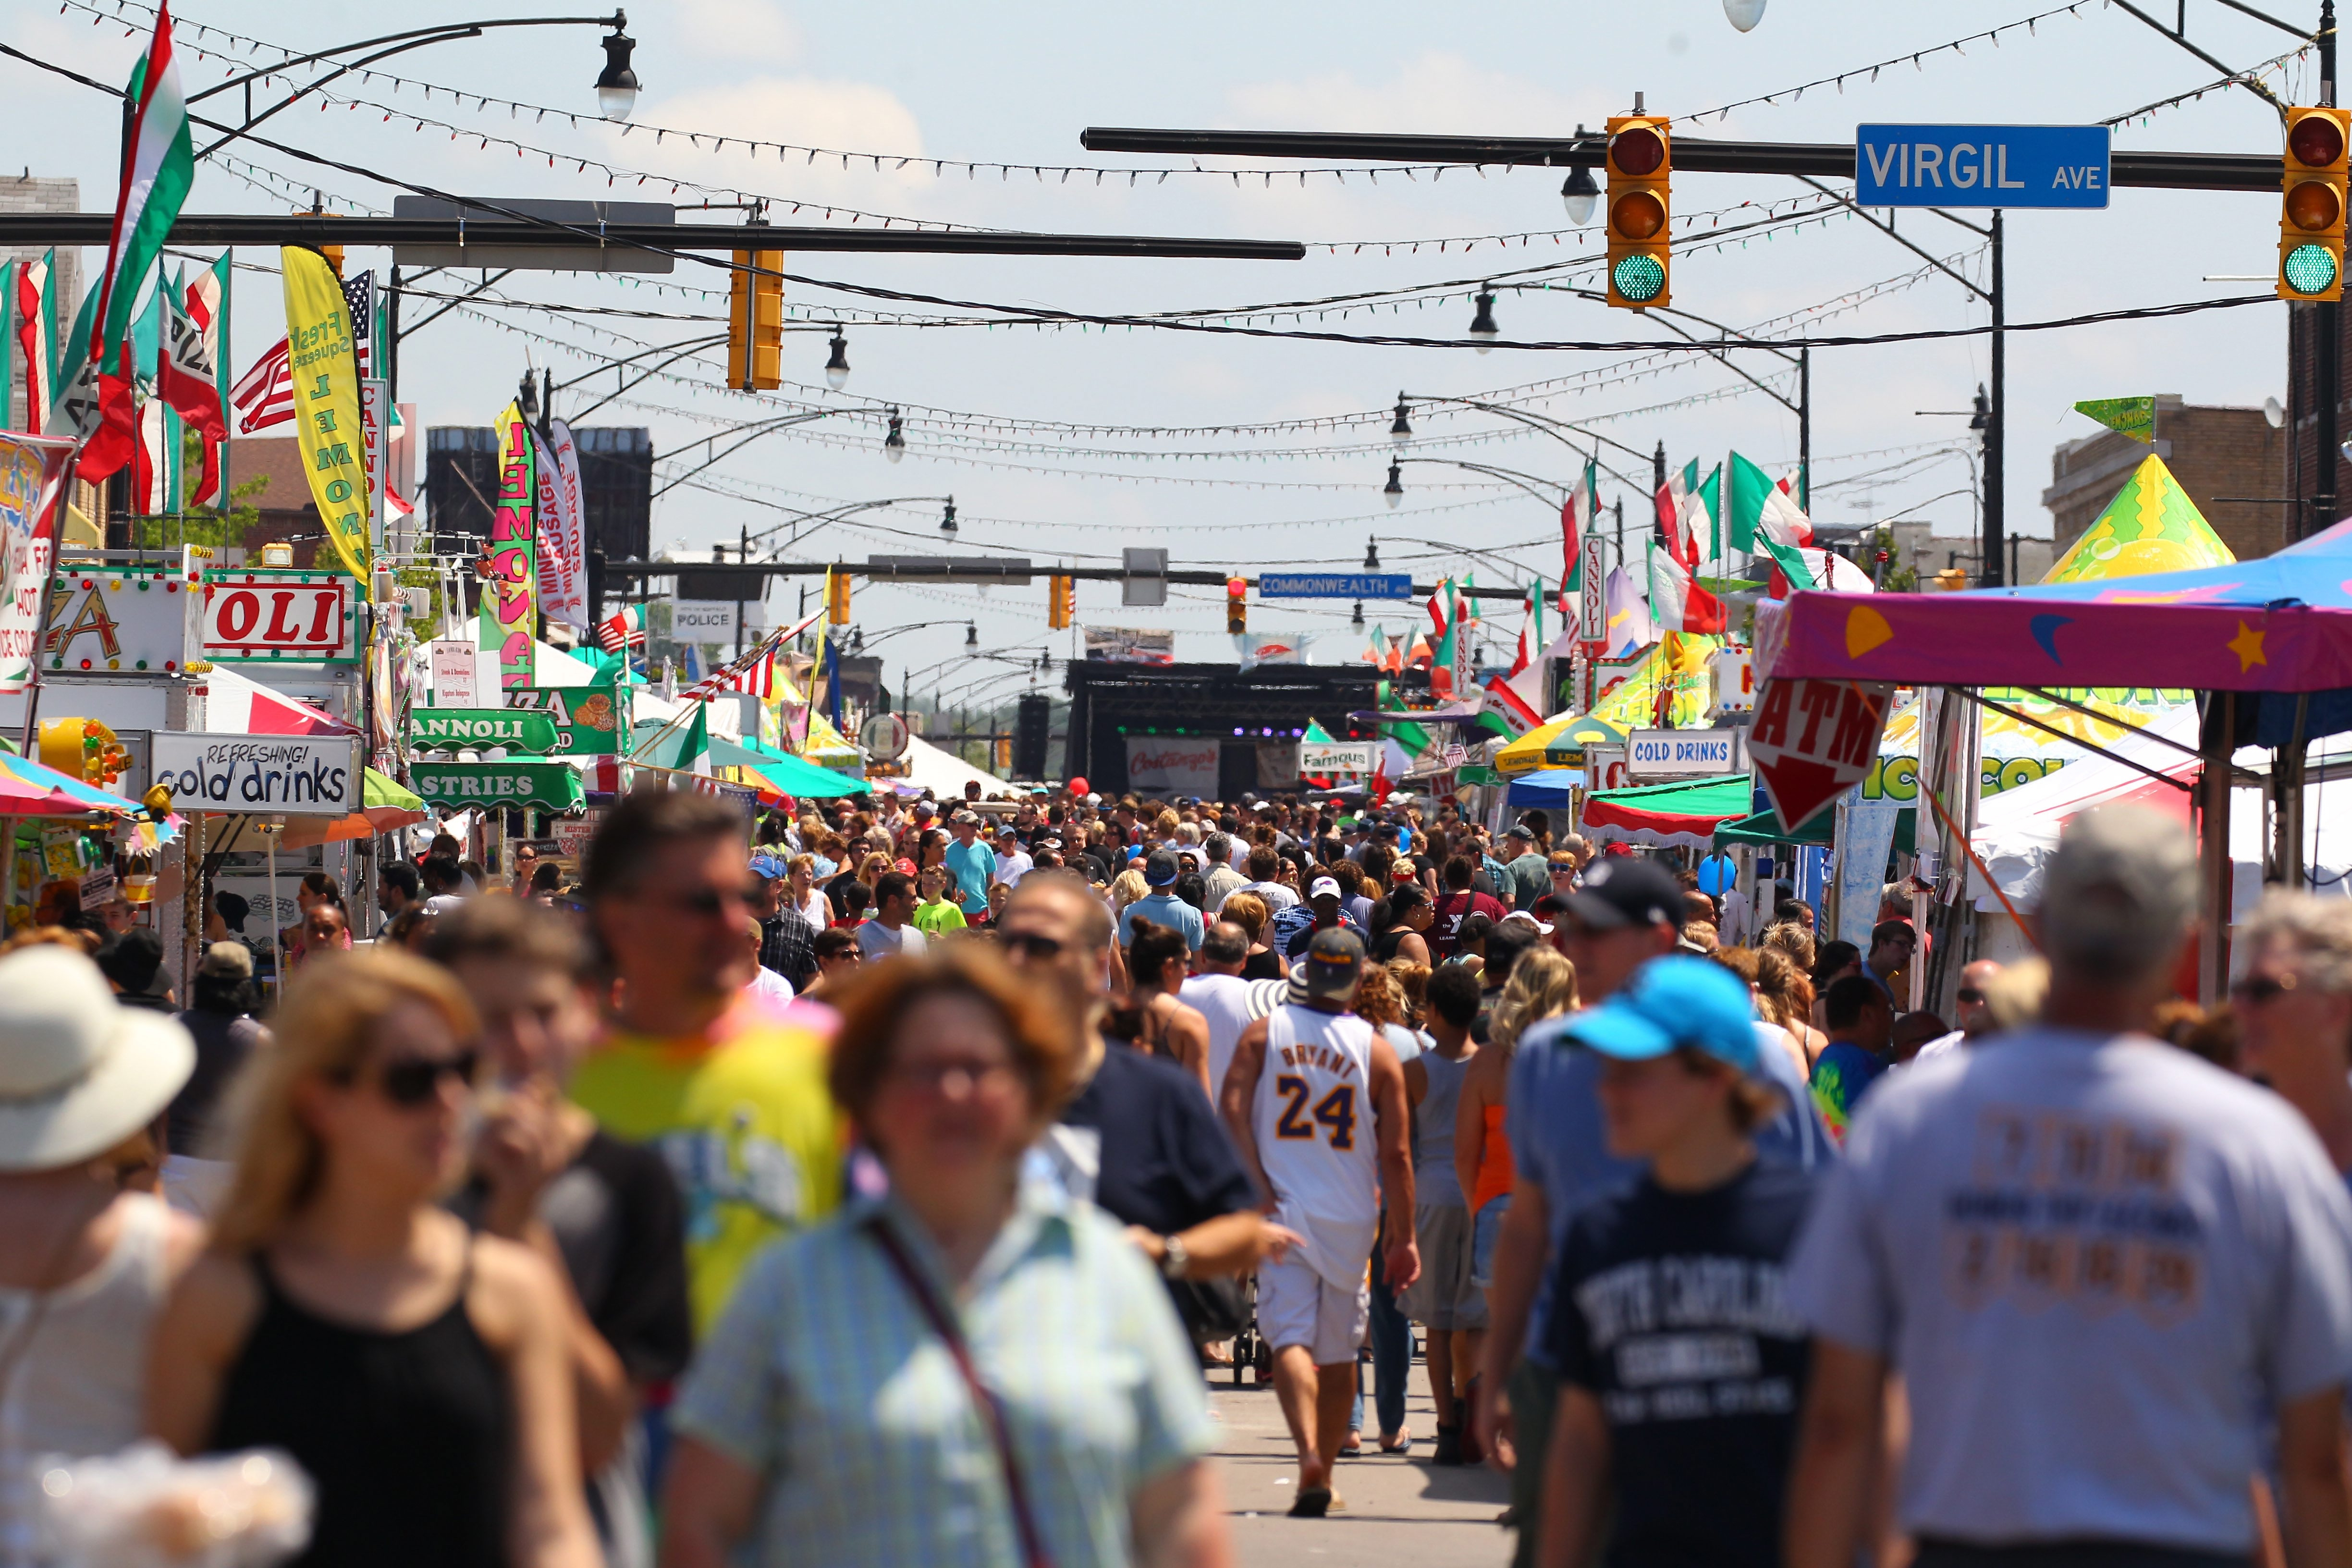 People pack the street during the Italian Heritage Festival on Hertel Ave in Buffalo on July 19. (Mark Mulville/Buffalo News)